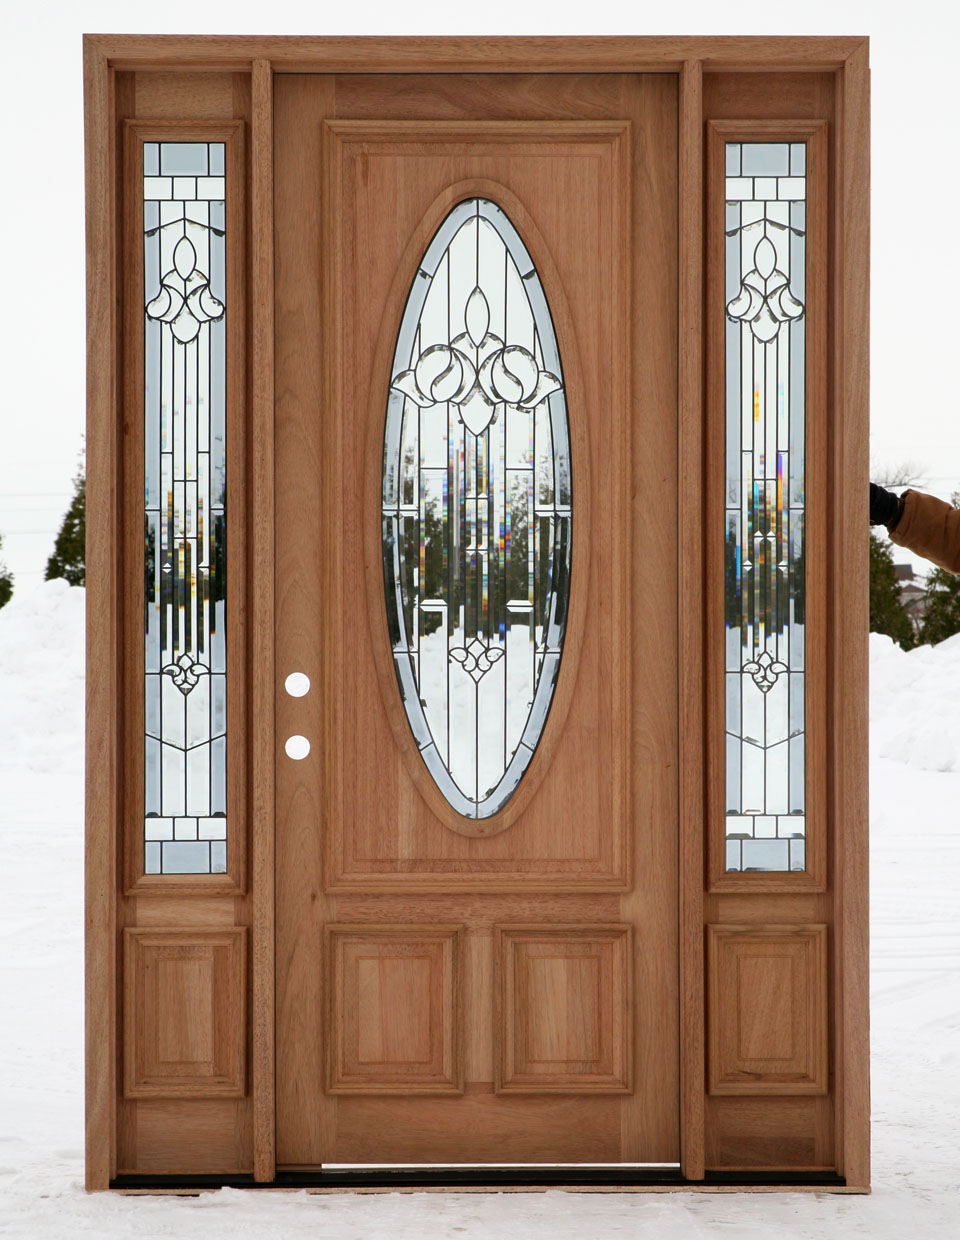 Exterior Wholesale Doors Exterior Entry Doors with Sidelights & Exterior Entry Doors with Sidelights pezcame.com